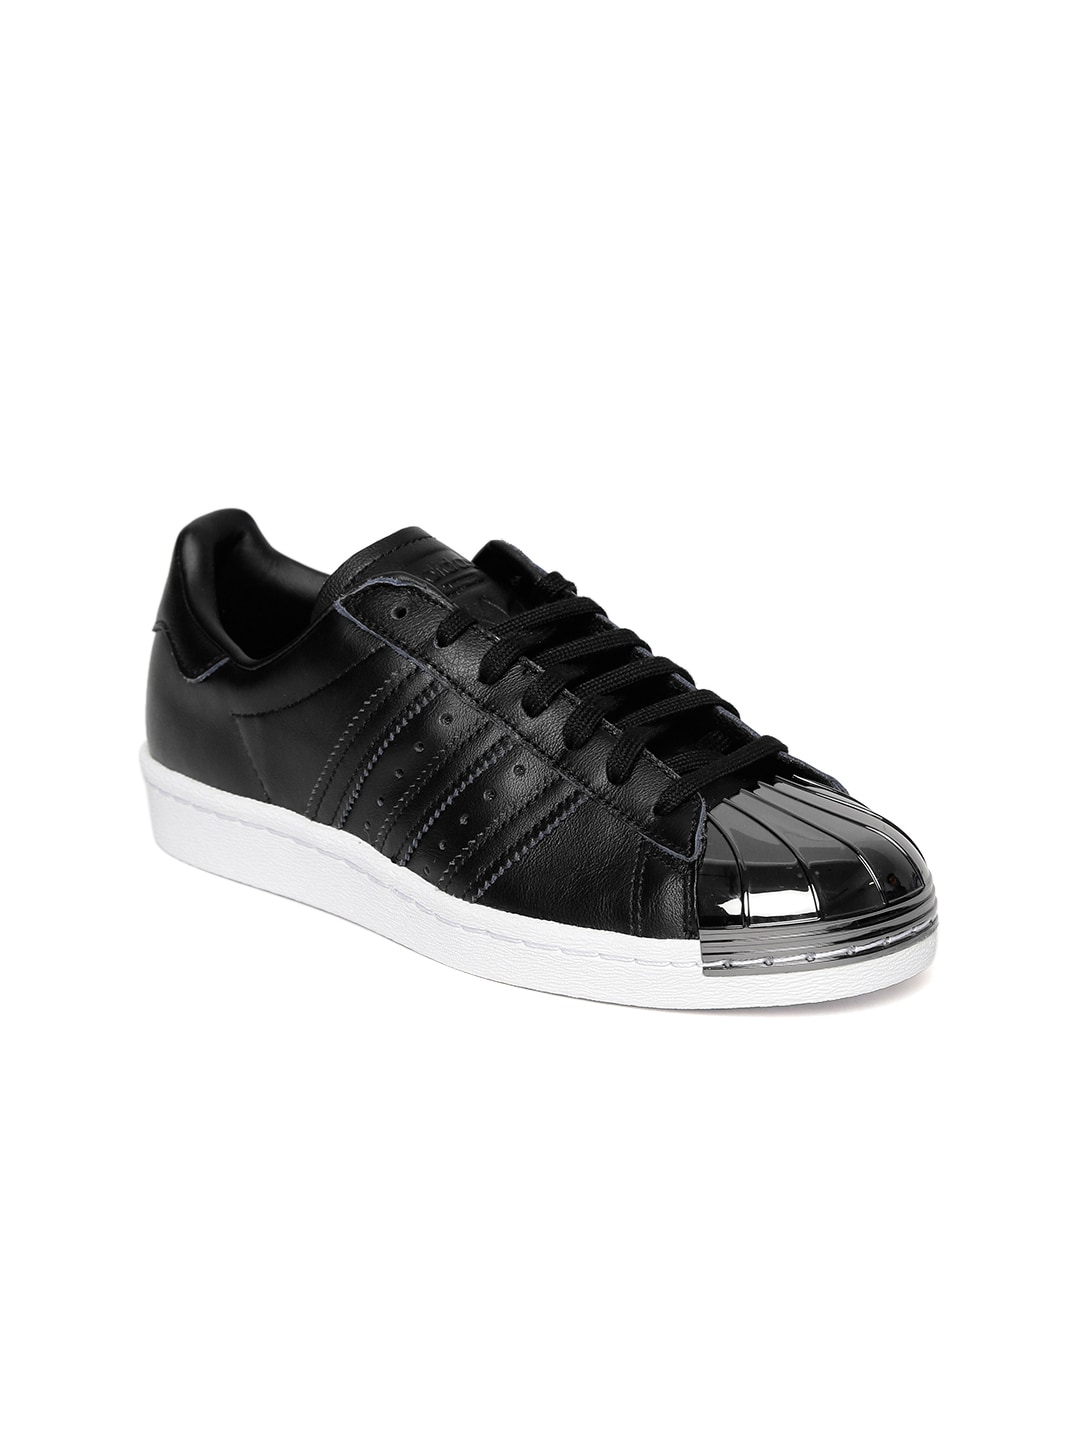 5c57b5779032 Adidas Shoes - Buy Adidas Shoes for Men   Women Online - Myntra